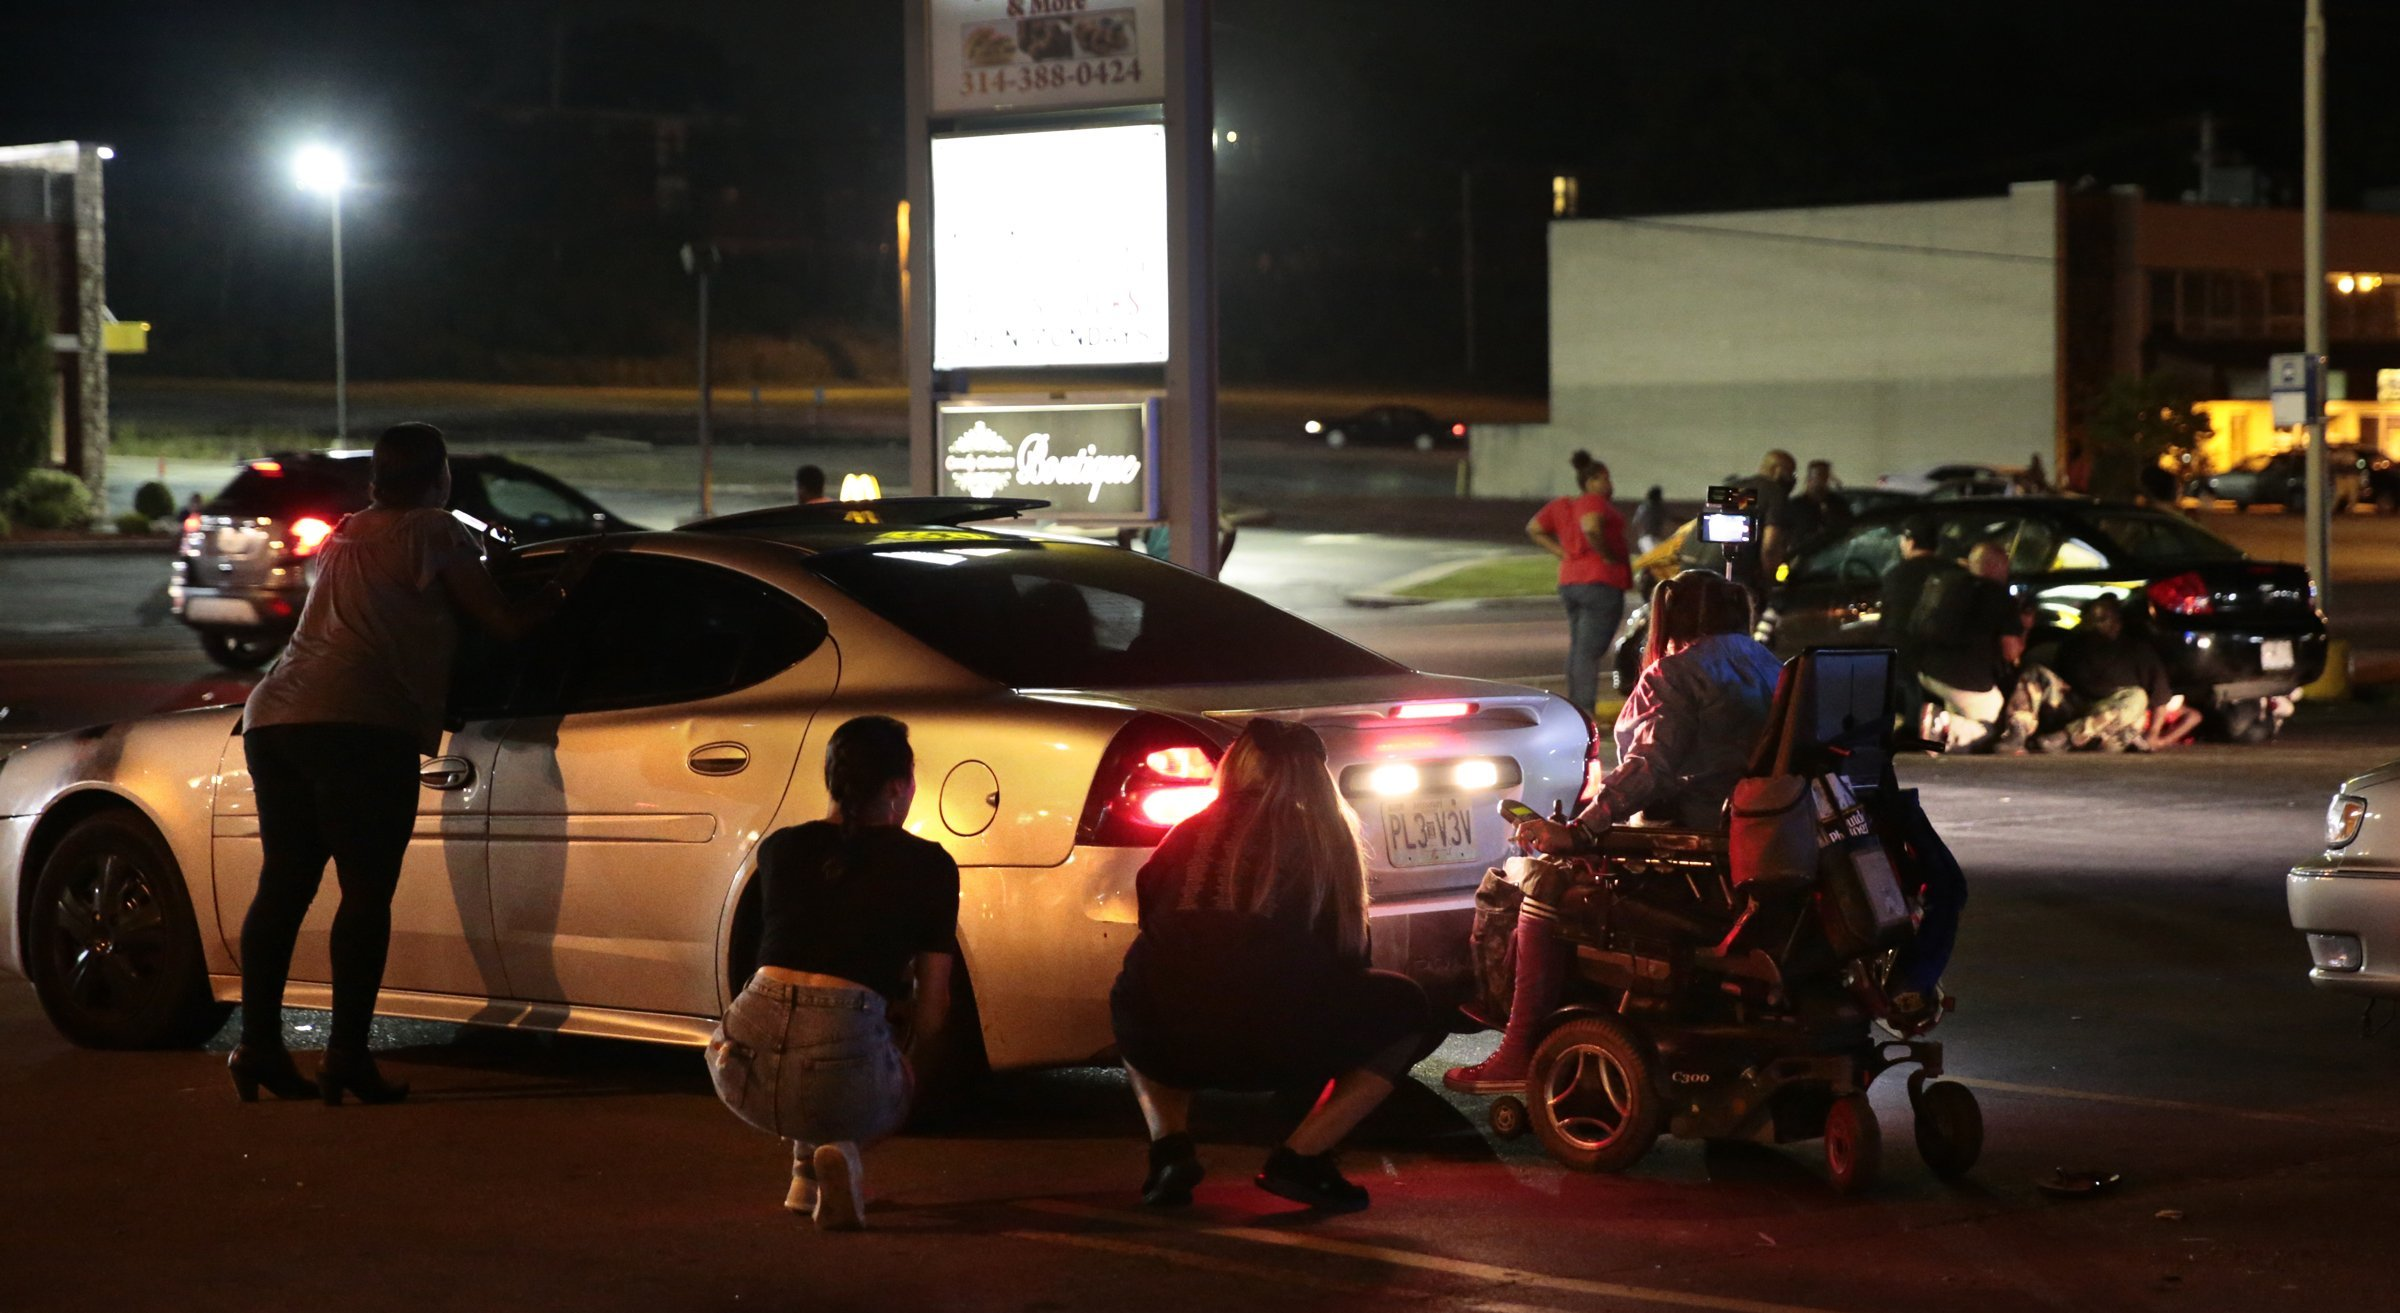 Witnesses: Shots fired in Ferguson after car hits protester